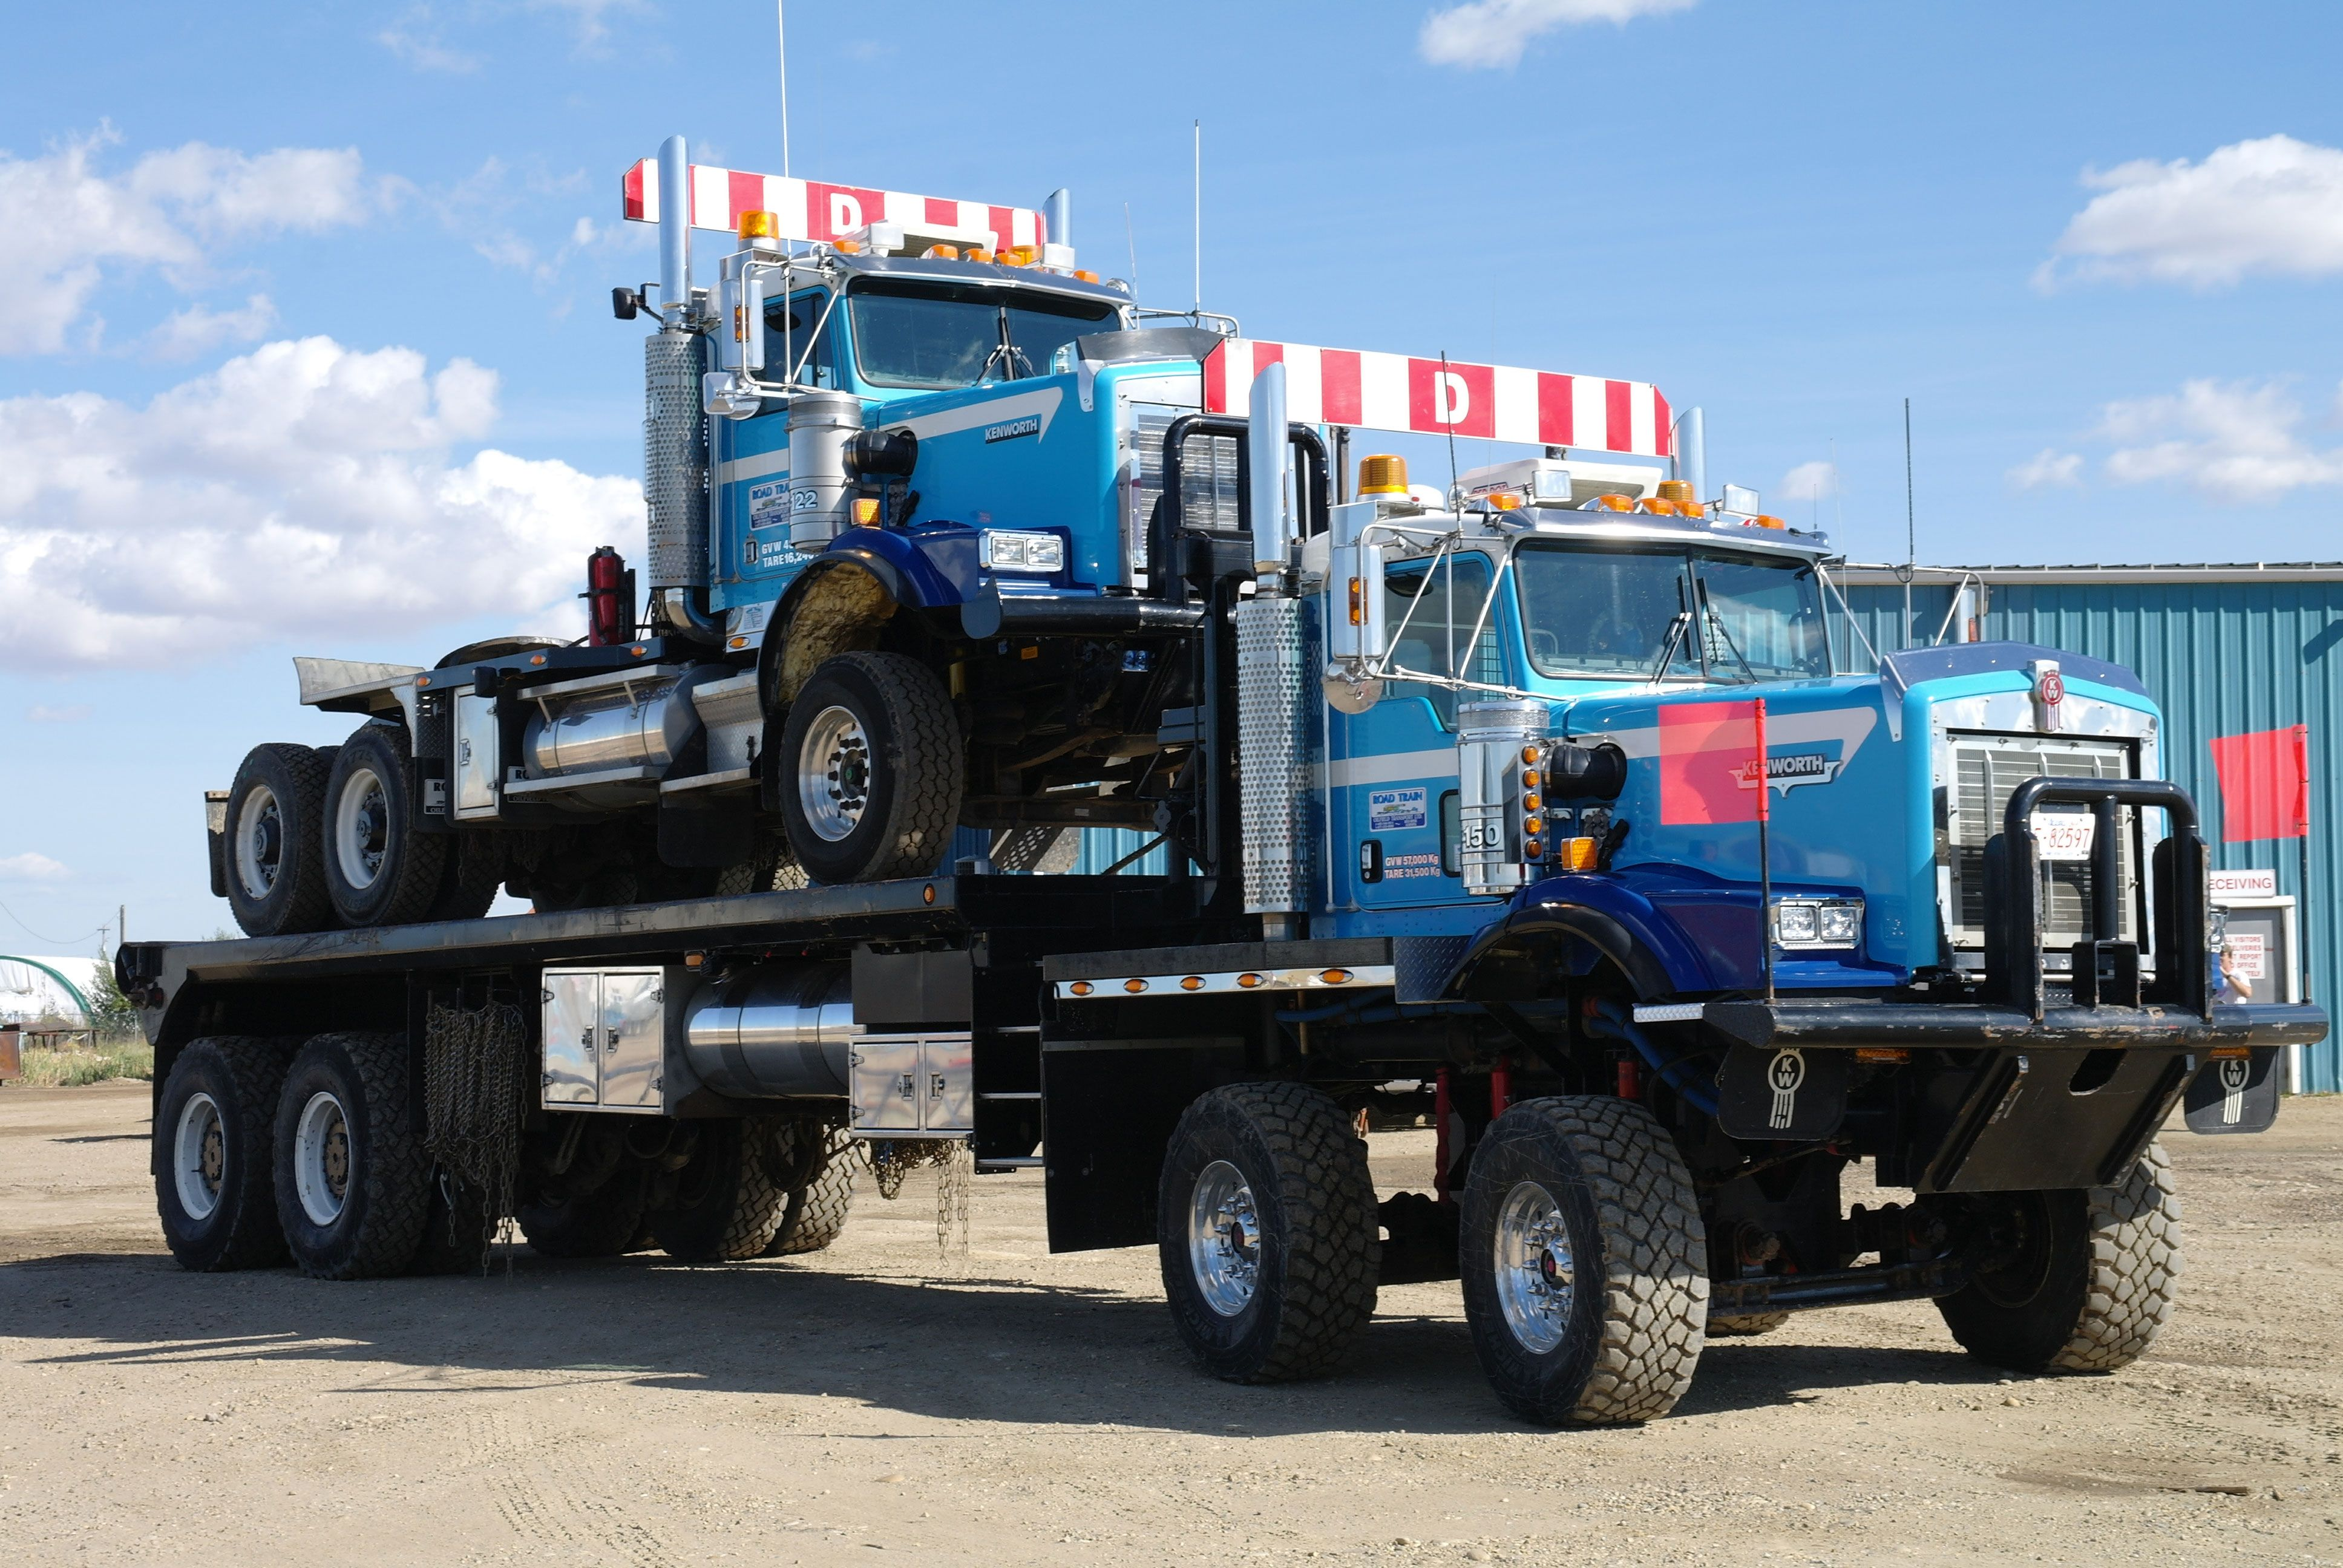 Bed Trucks Kenworth trucks, Big rig trucks